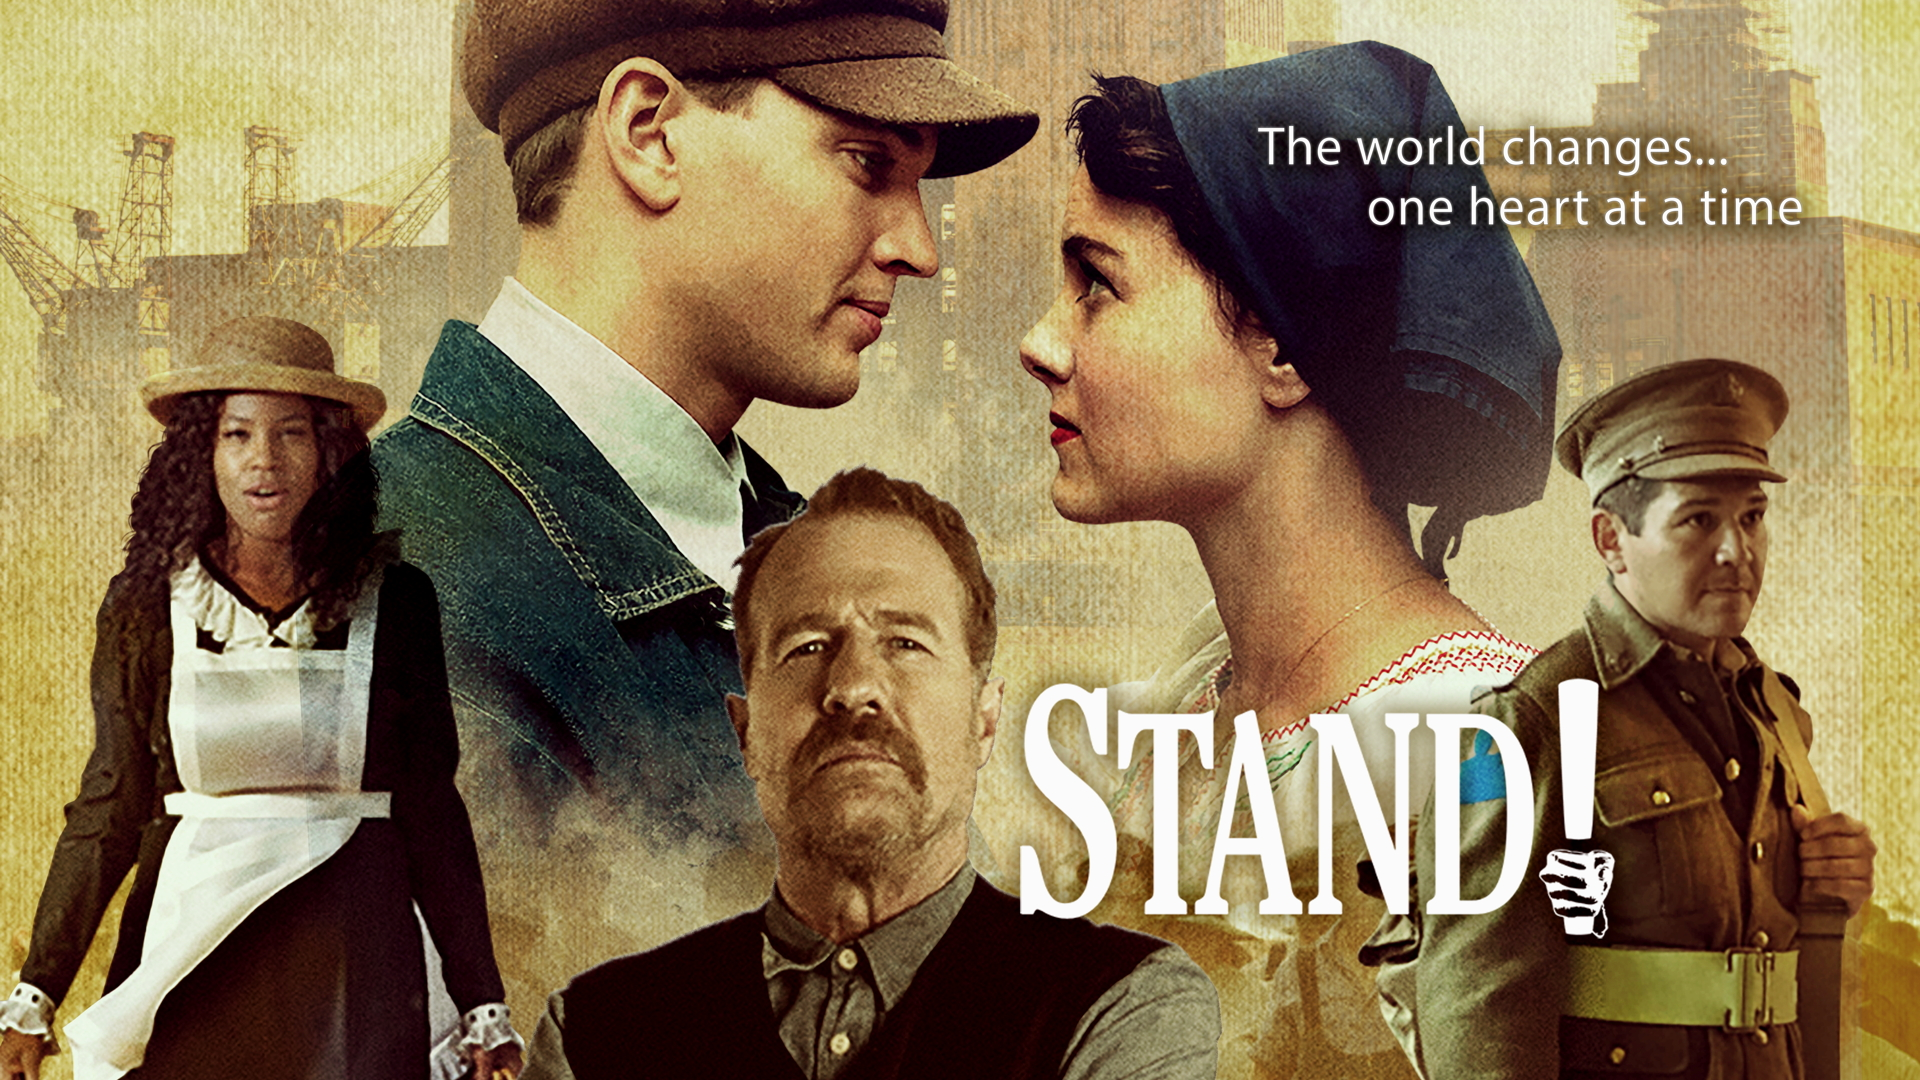 Watch the 'Stand!' Movie at a Special IAM Discount